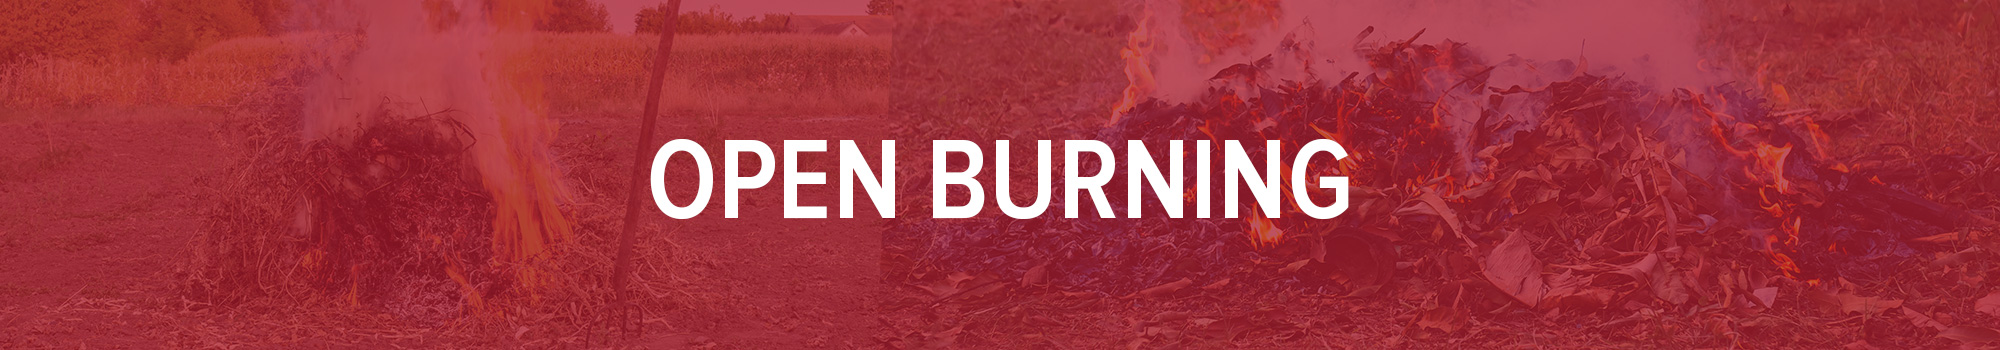 open burning illustration banner